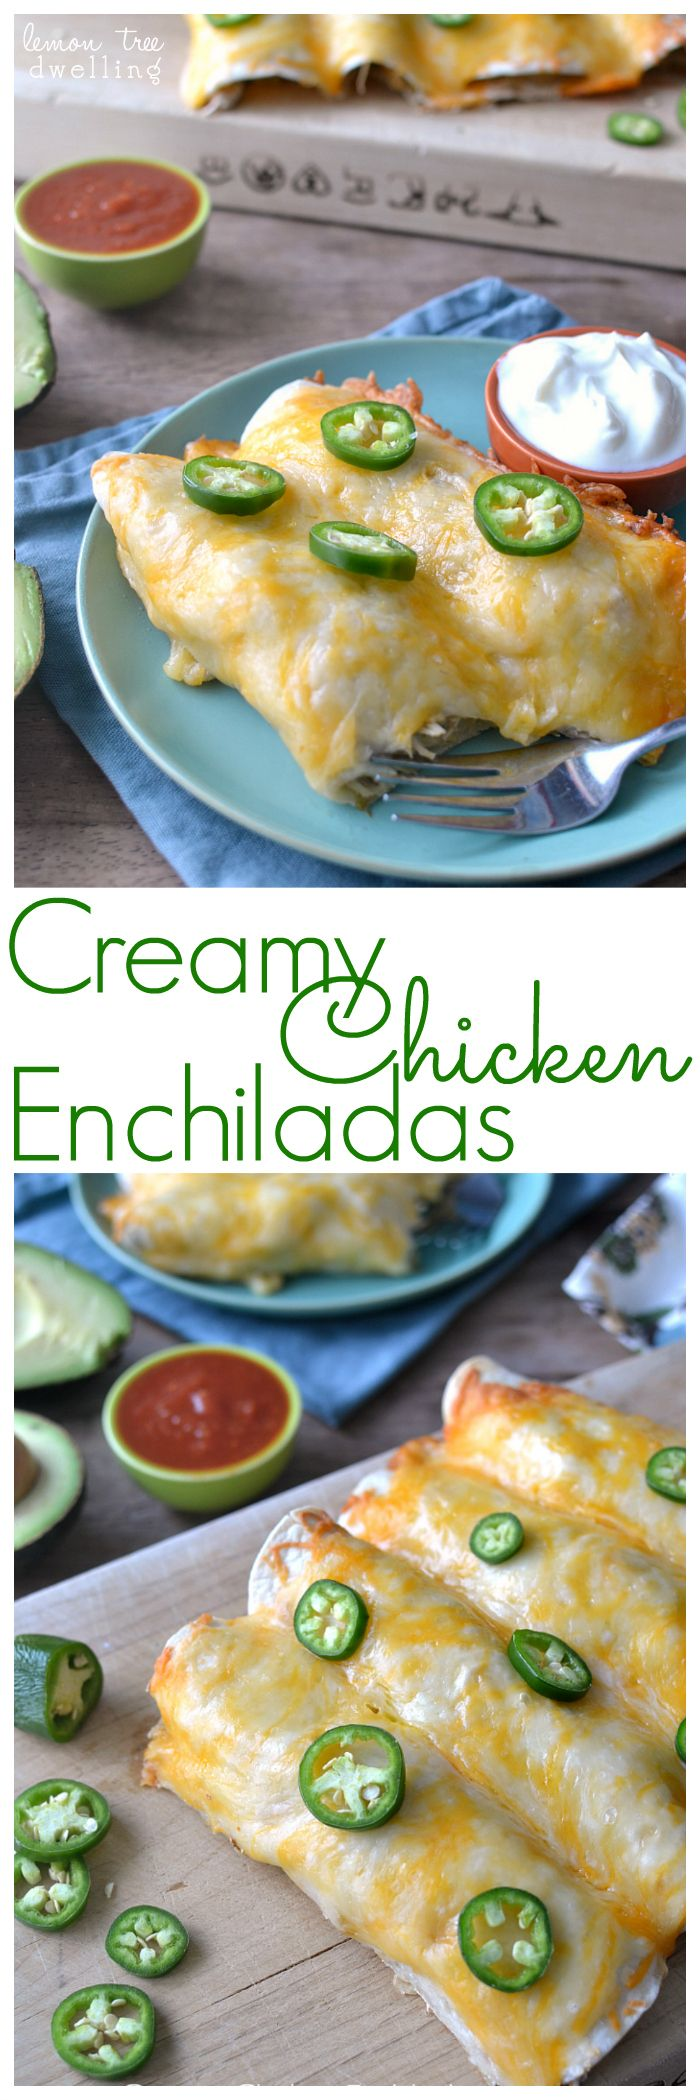 The BEST Creamy Chicken Enchiladas! #enchiladas #foodporn #dan330 http://livedan330.com/2015/02/01/creamy-chicken-enchiladas/